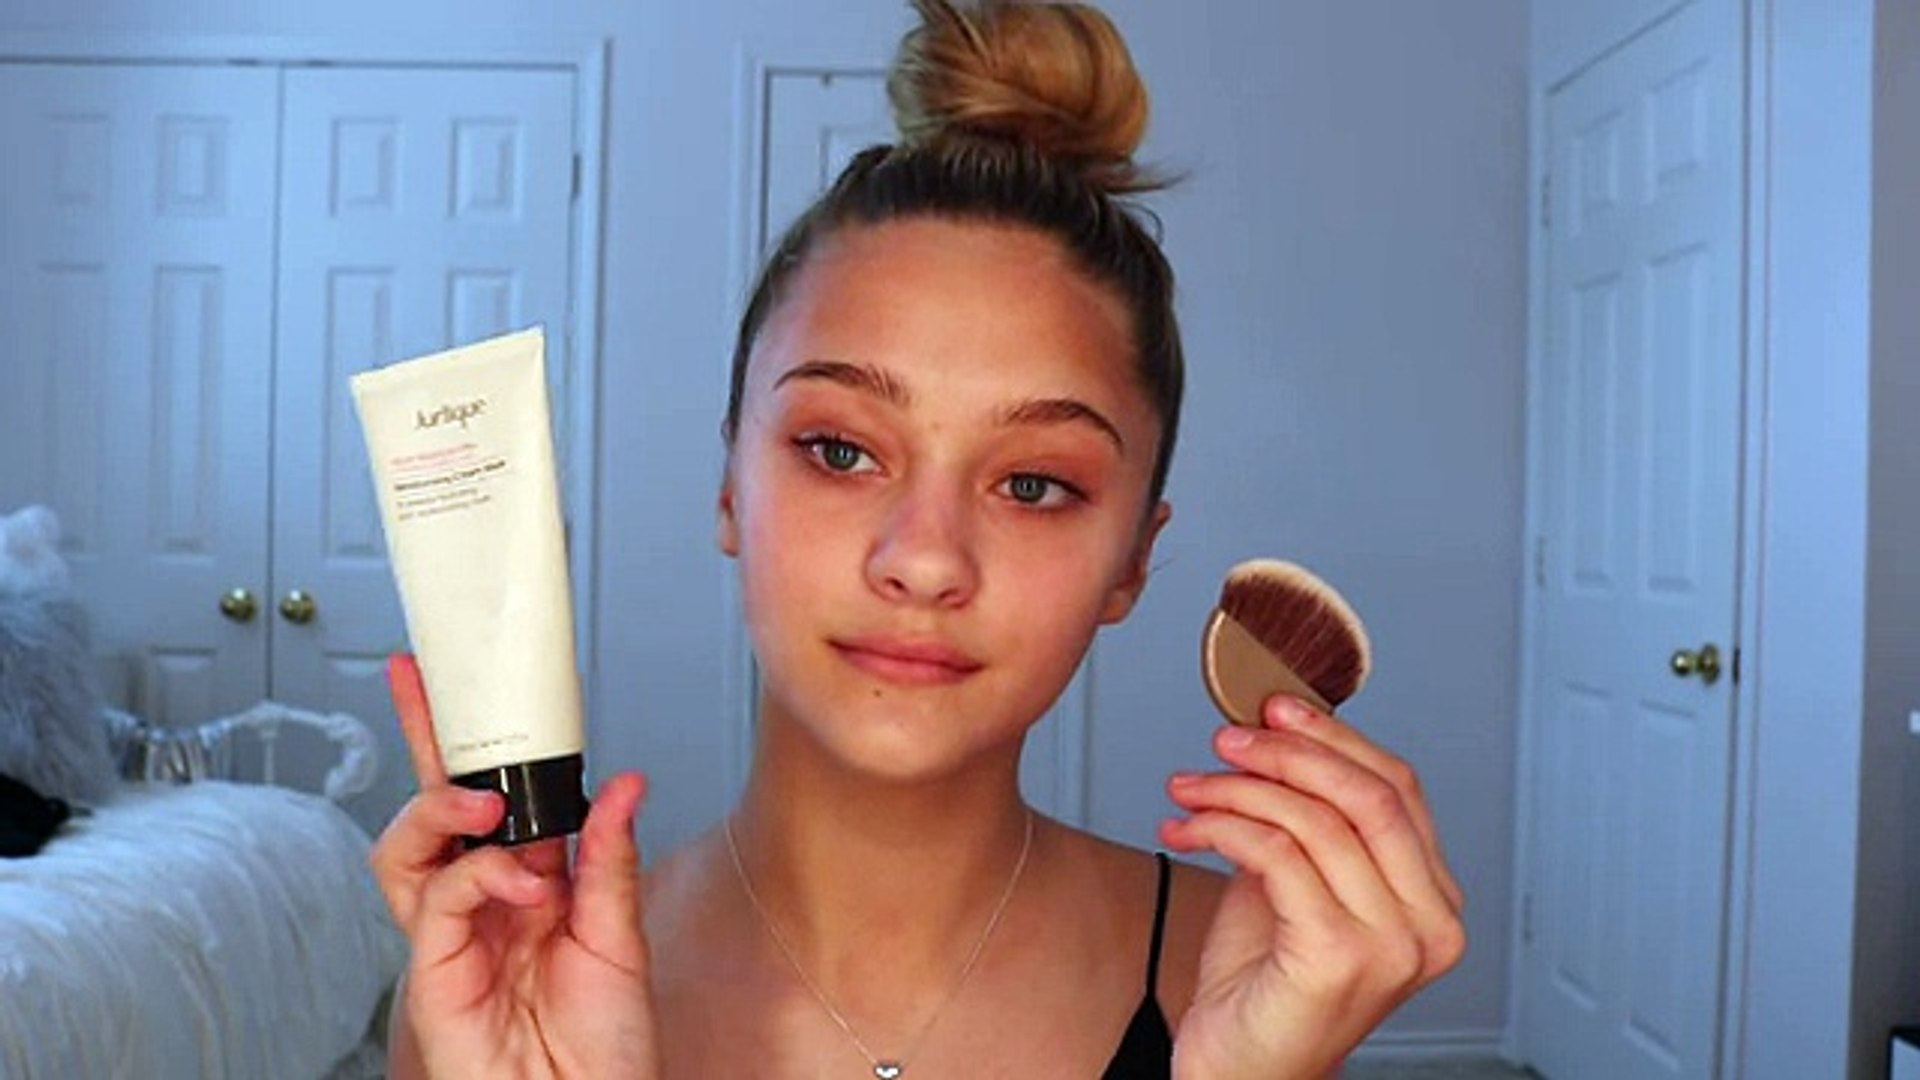 HOW TO GET FLAWLESS SKIN MY SKINCARE ROUTINE